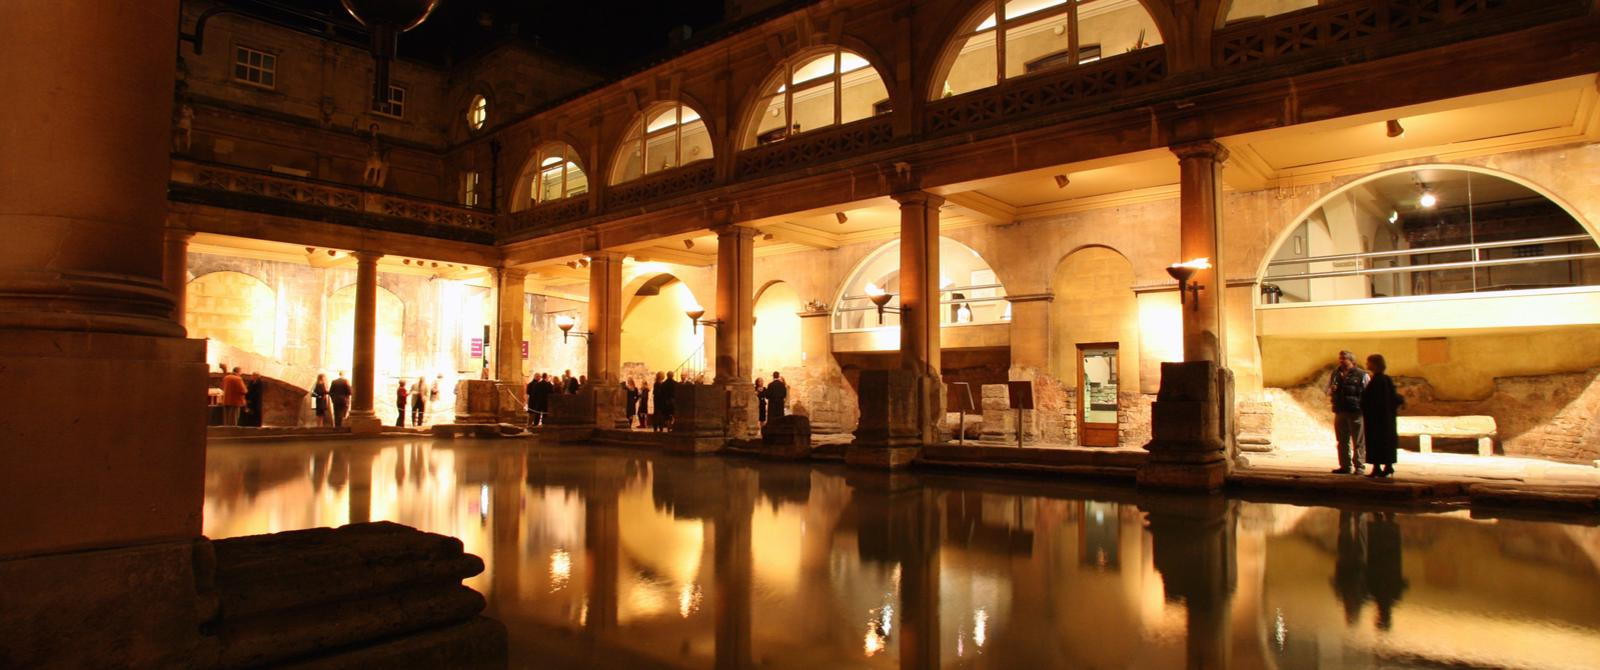 Image: Private event at the Roman Baths